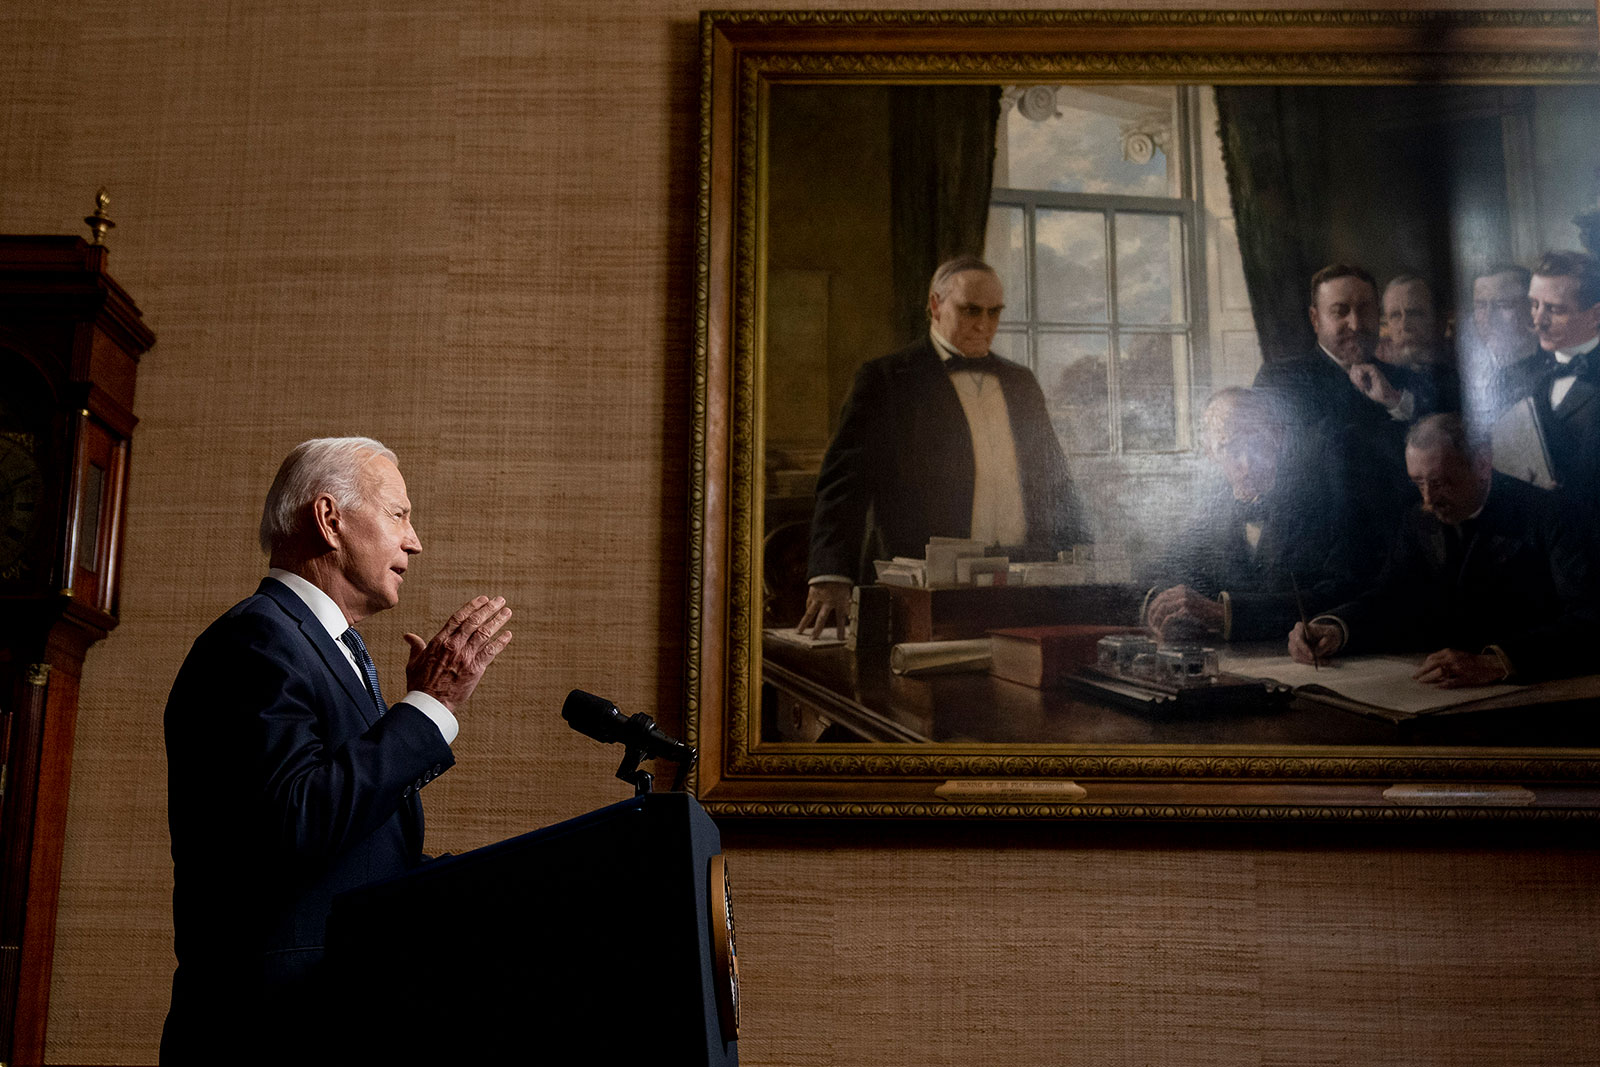 US President Joe Biden speaks from the White House Treaty Room on Wednesday, April 14, as he announces his decision towithdraw American troops from Afghanistan.